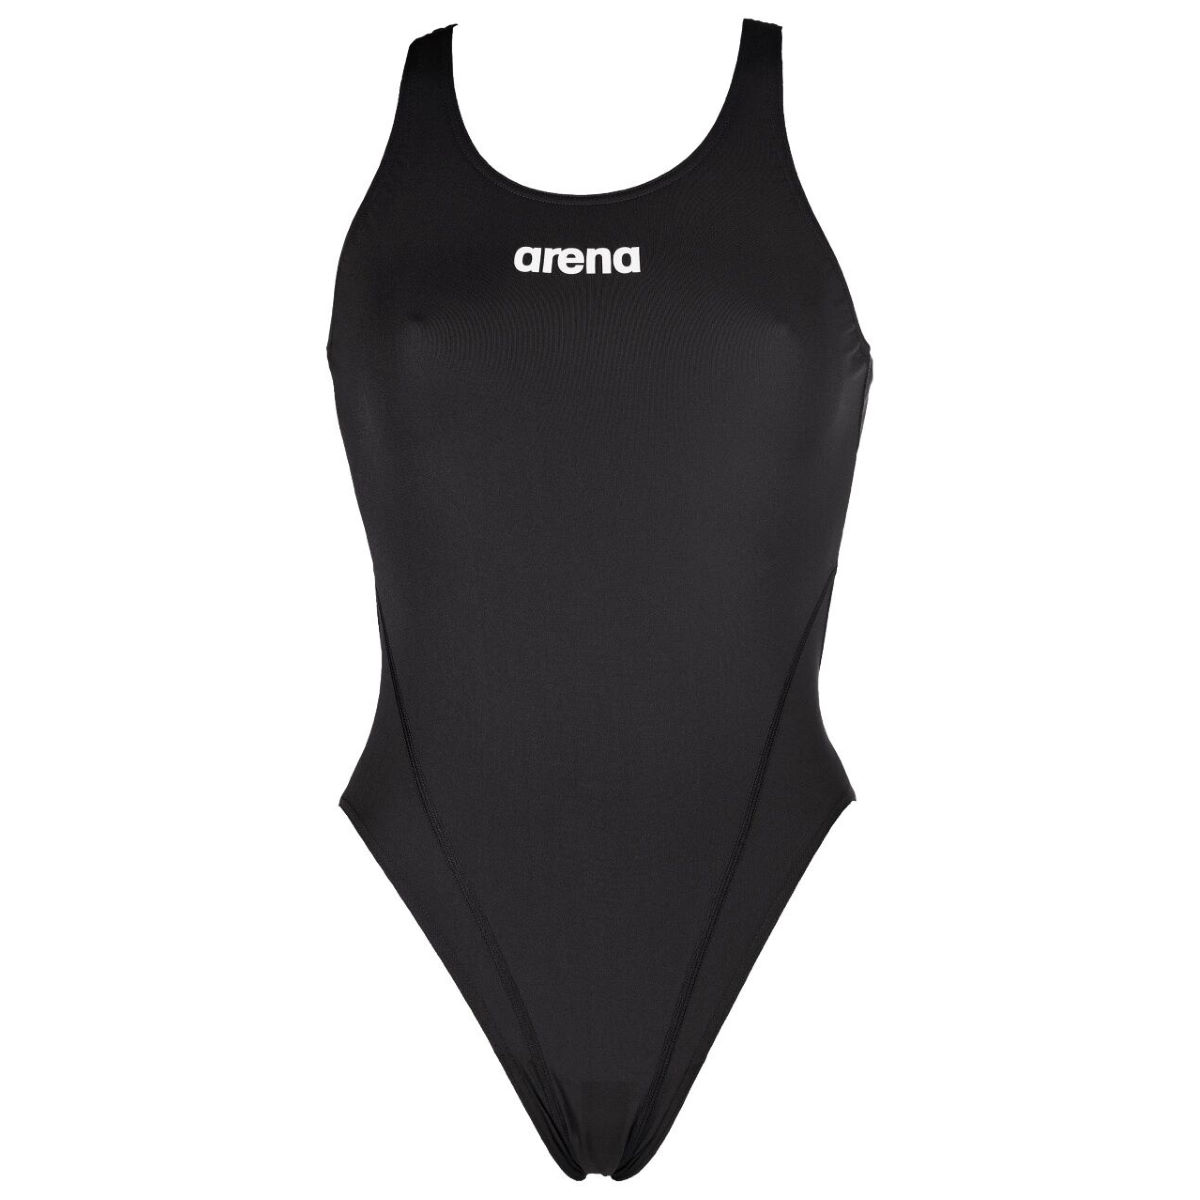 Arena Solid Swim Tech High Swimsuit - 34 Red/white